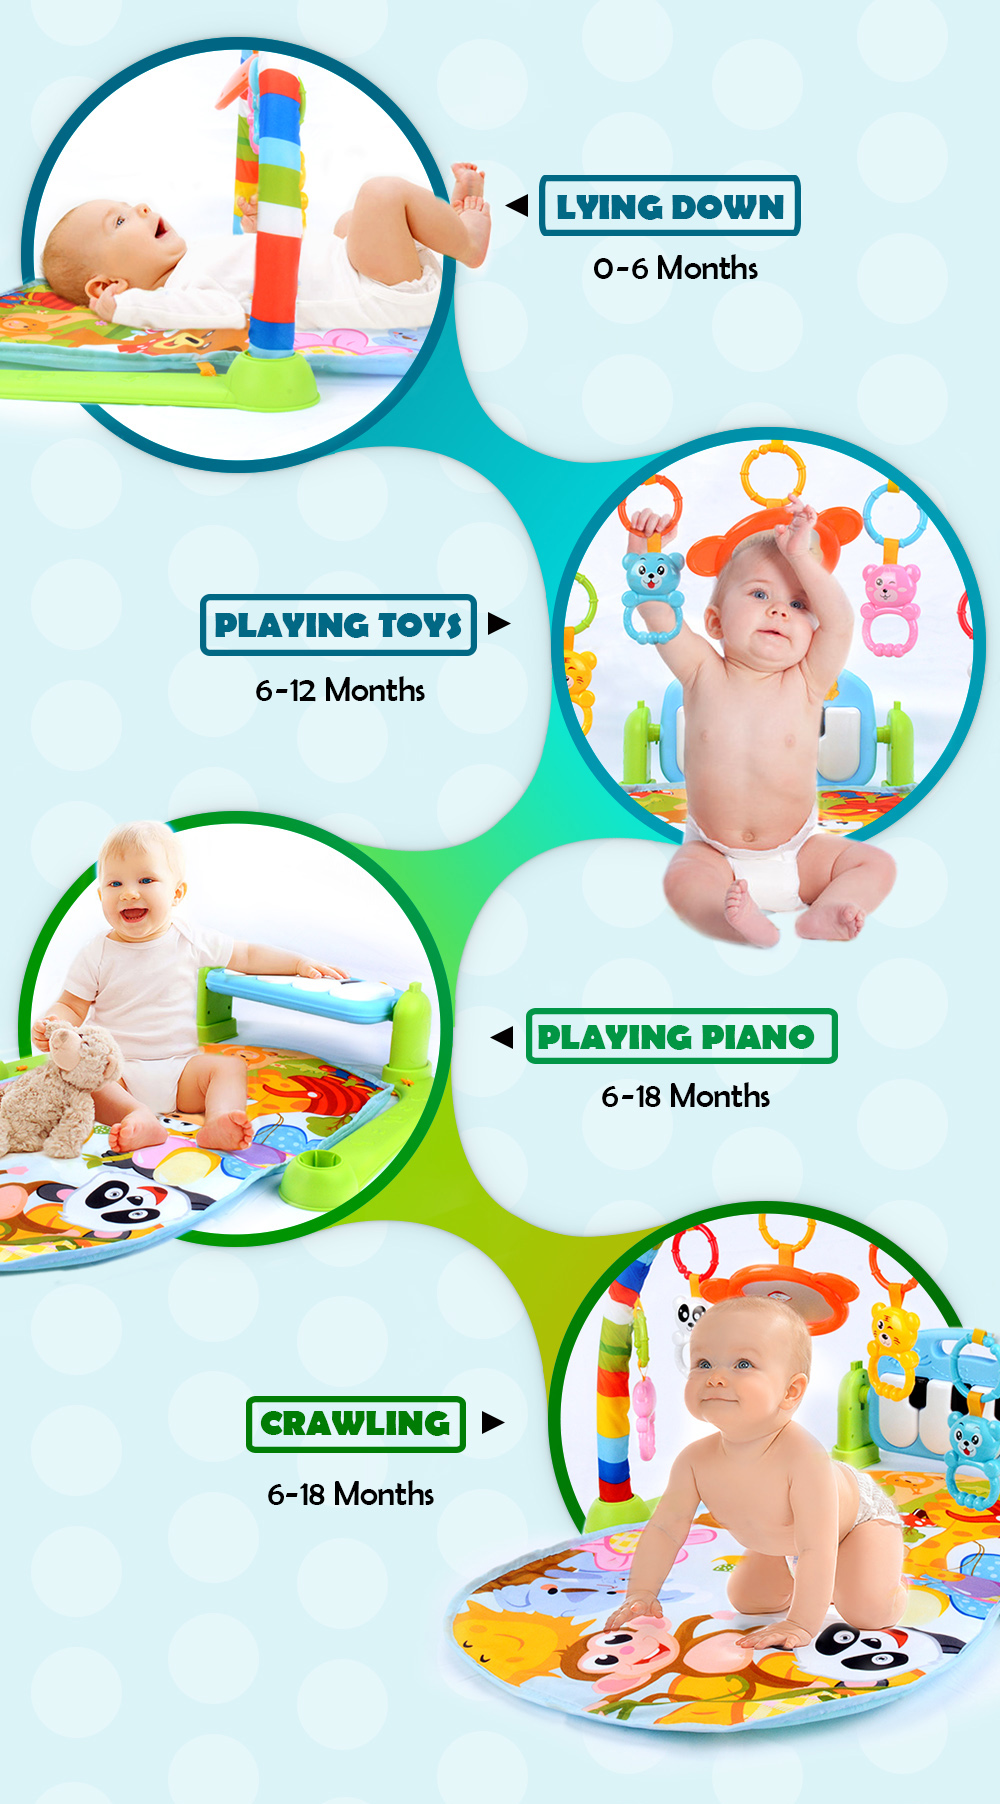 Hf5c35944e1e2498997071cd1454cb8fbP 16 Styles Baby Music Rack Play Mat Kid Rug Puzzle Carpet Piano Keyboard Infant Playmat Early Education Gym Crawling Game Pad Toy